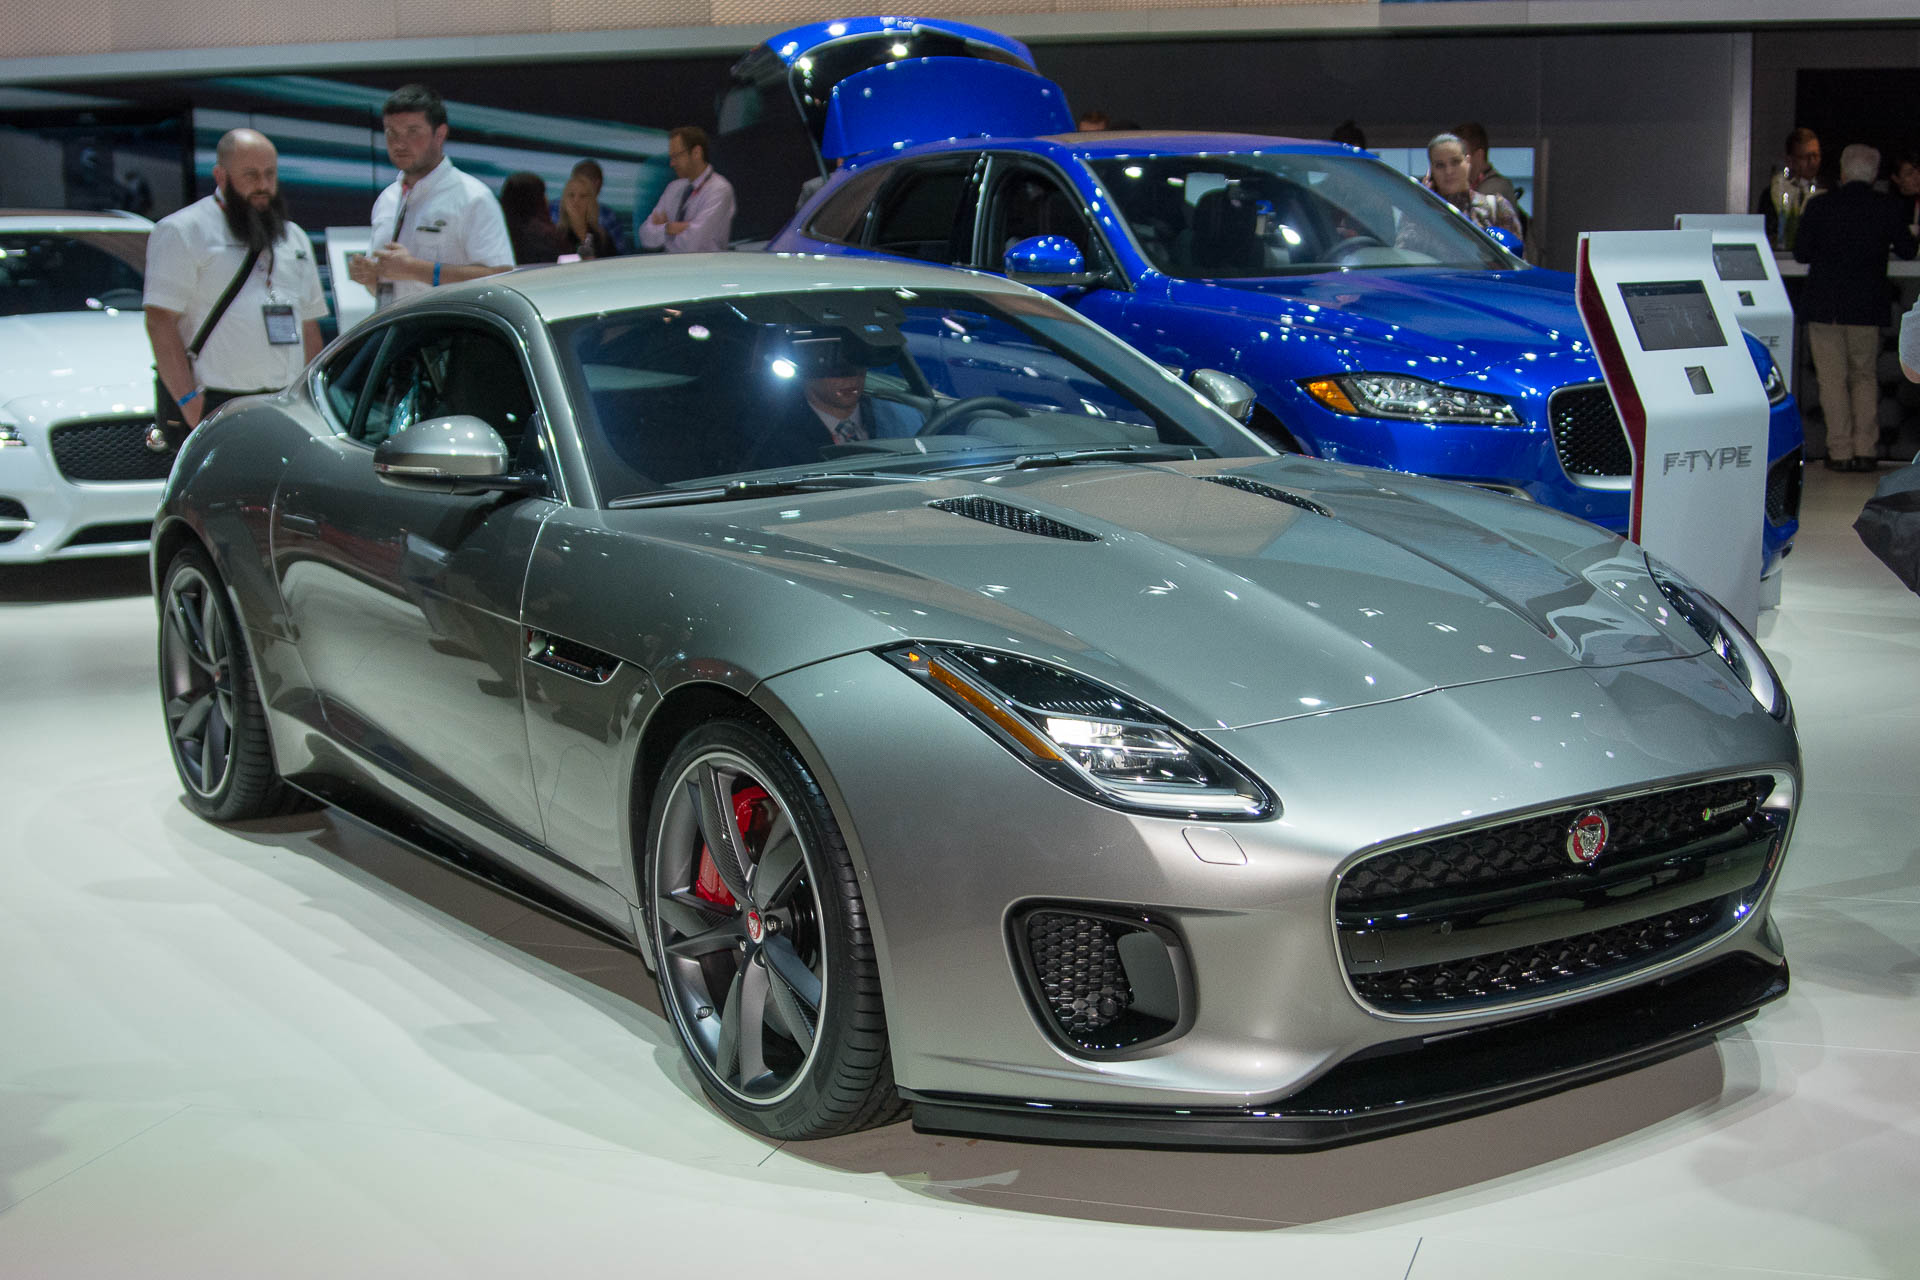 2018 jaguar f type price. Unique 2018 2018 Jaguar FType Pricing Drops To 60895 With Addition Of 4cylinder  Option In Jaguar F Type Price MotorAuthority